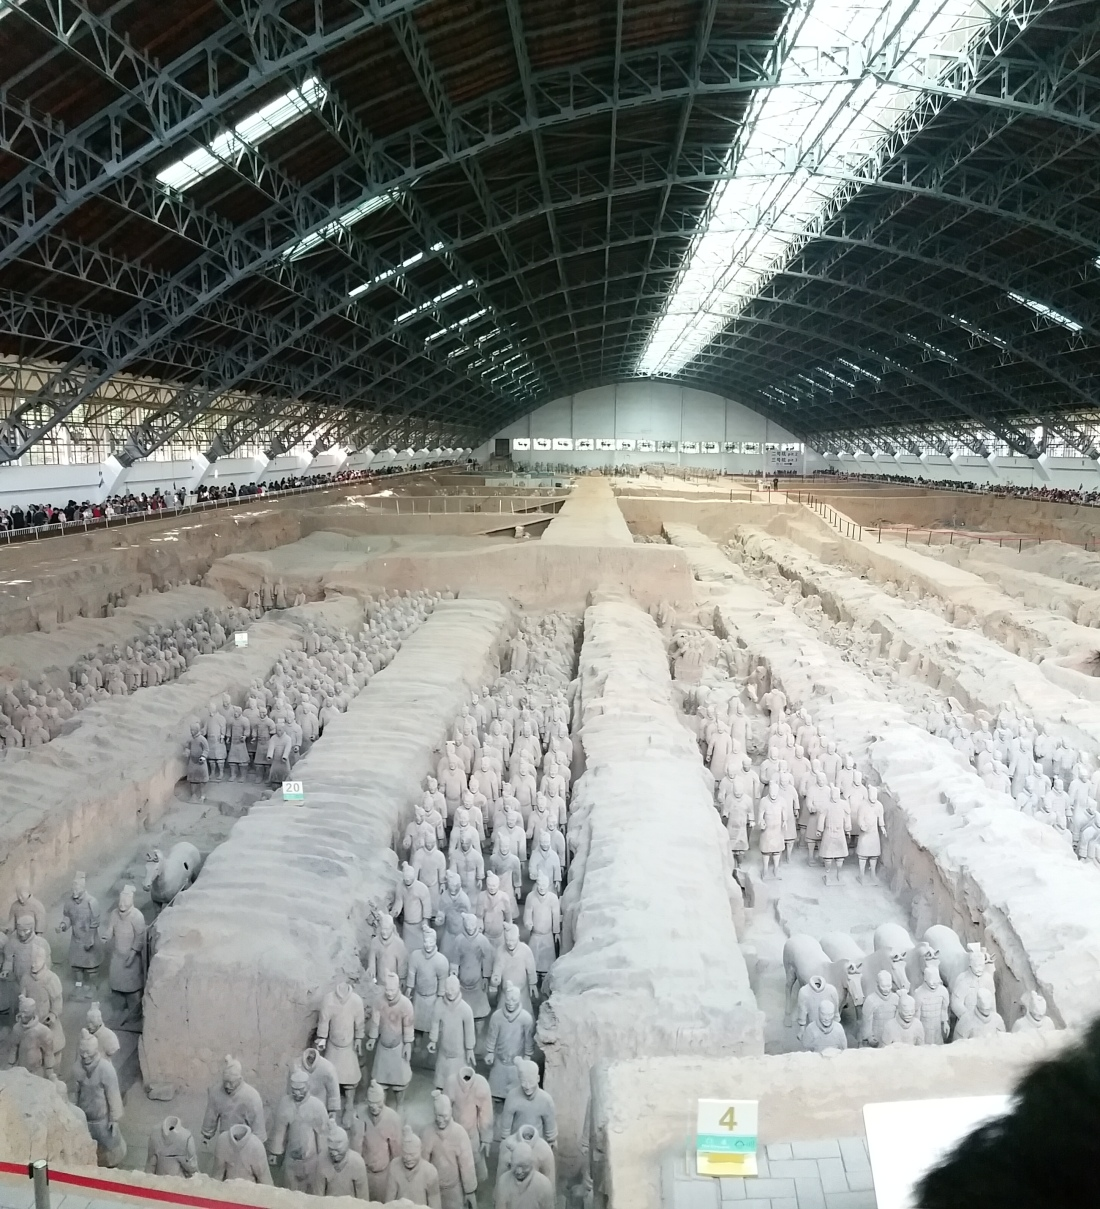 1110-17-10-terra-cotta-warriors-big-pit-from-the-front